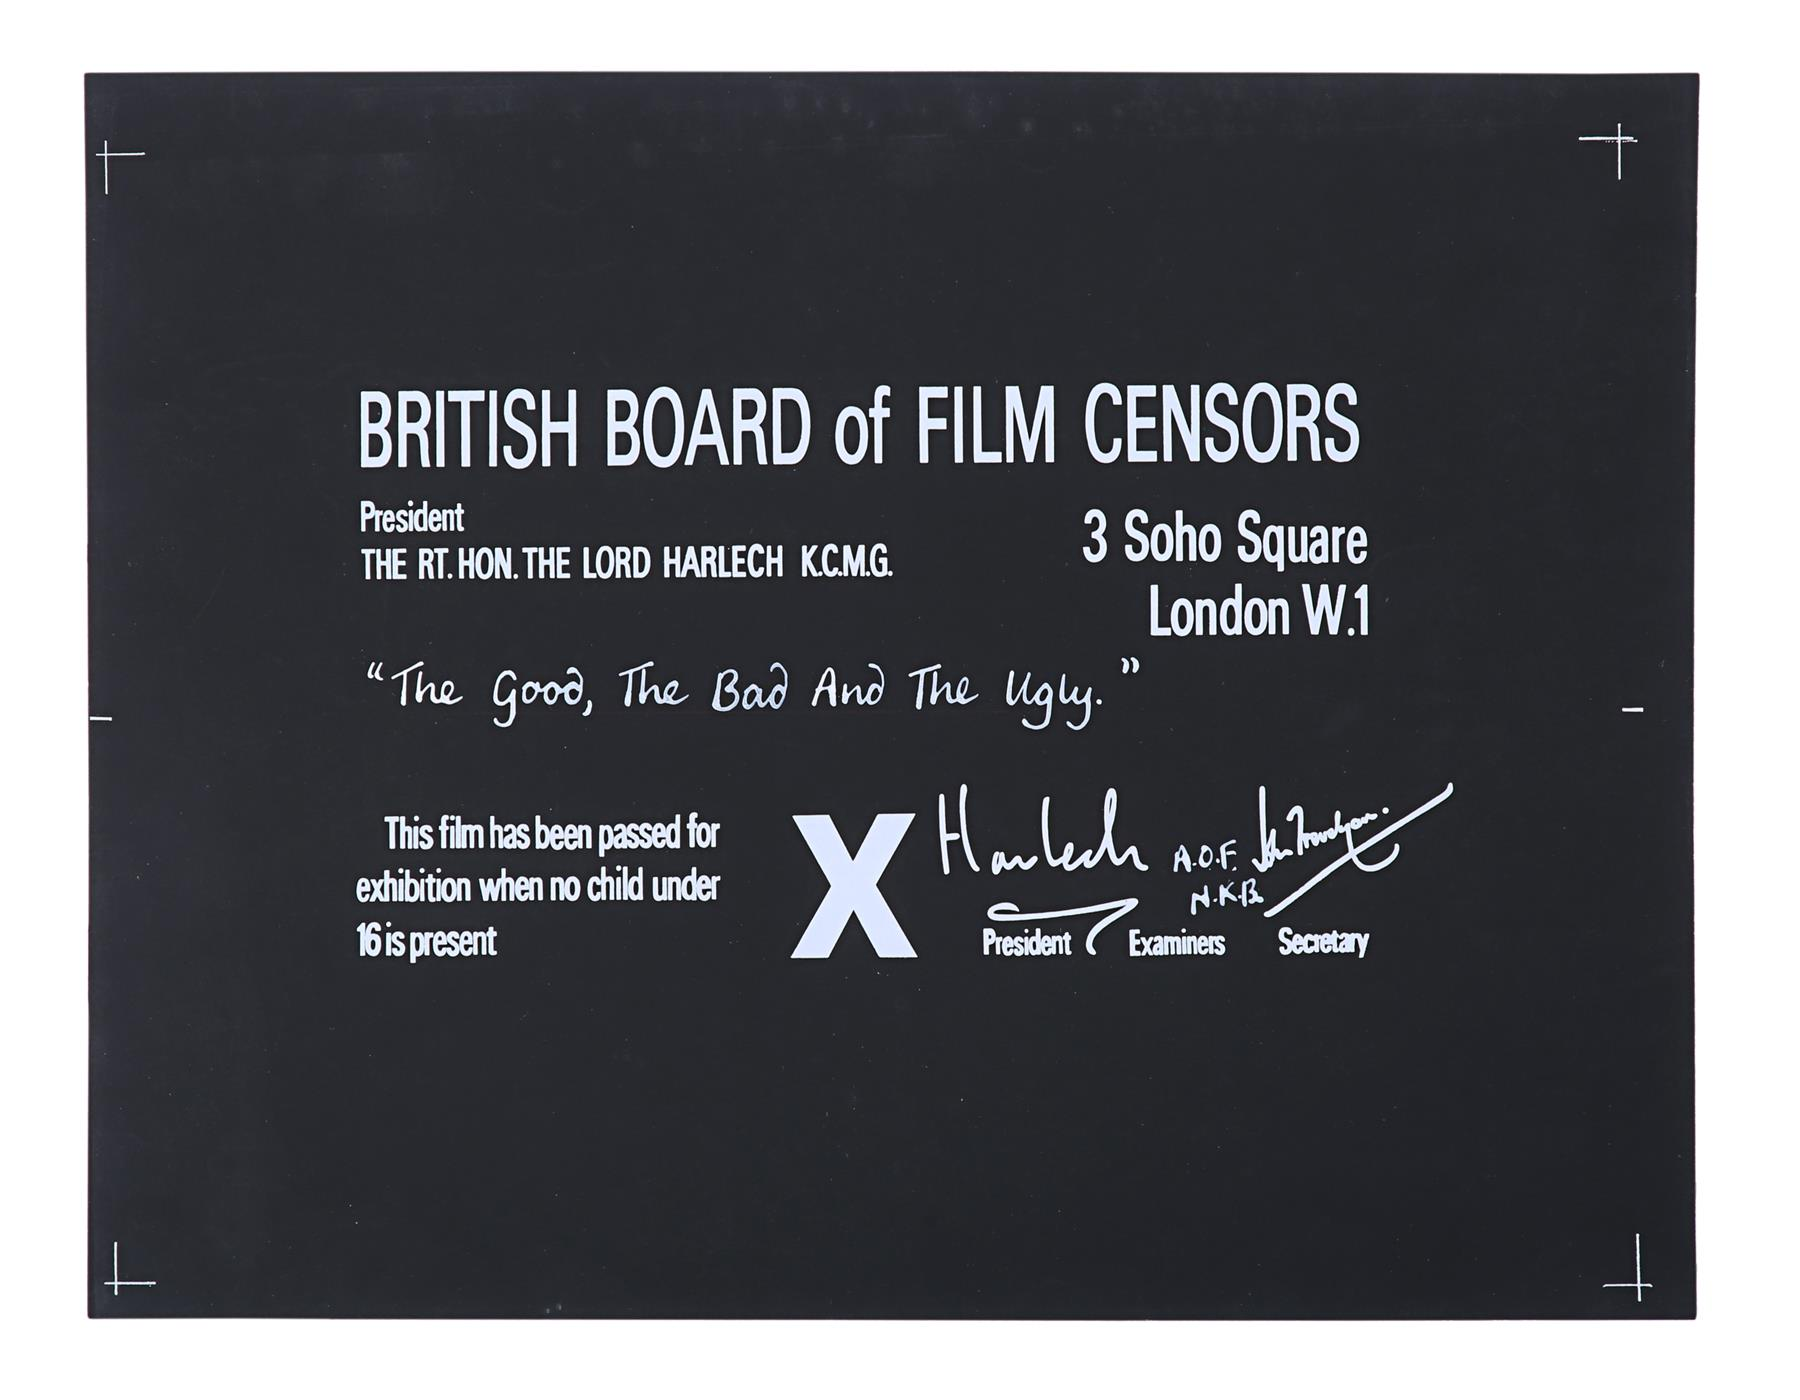 VARIOUS WESTERN PRODUCTIONS - BBFC Certificates Clint Eastwood Westerns - Image 3 of 5